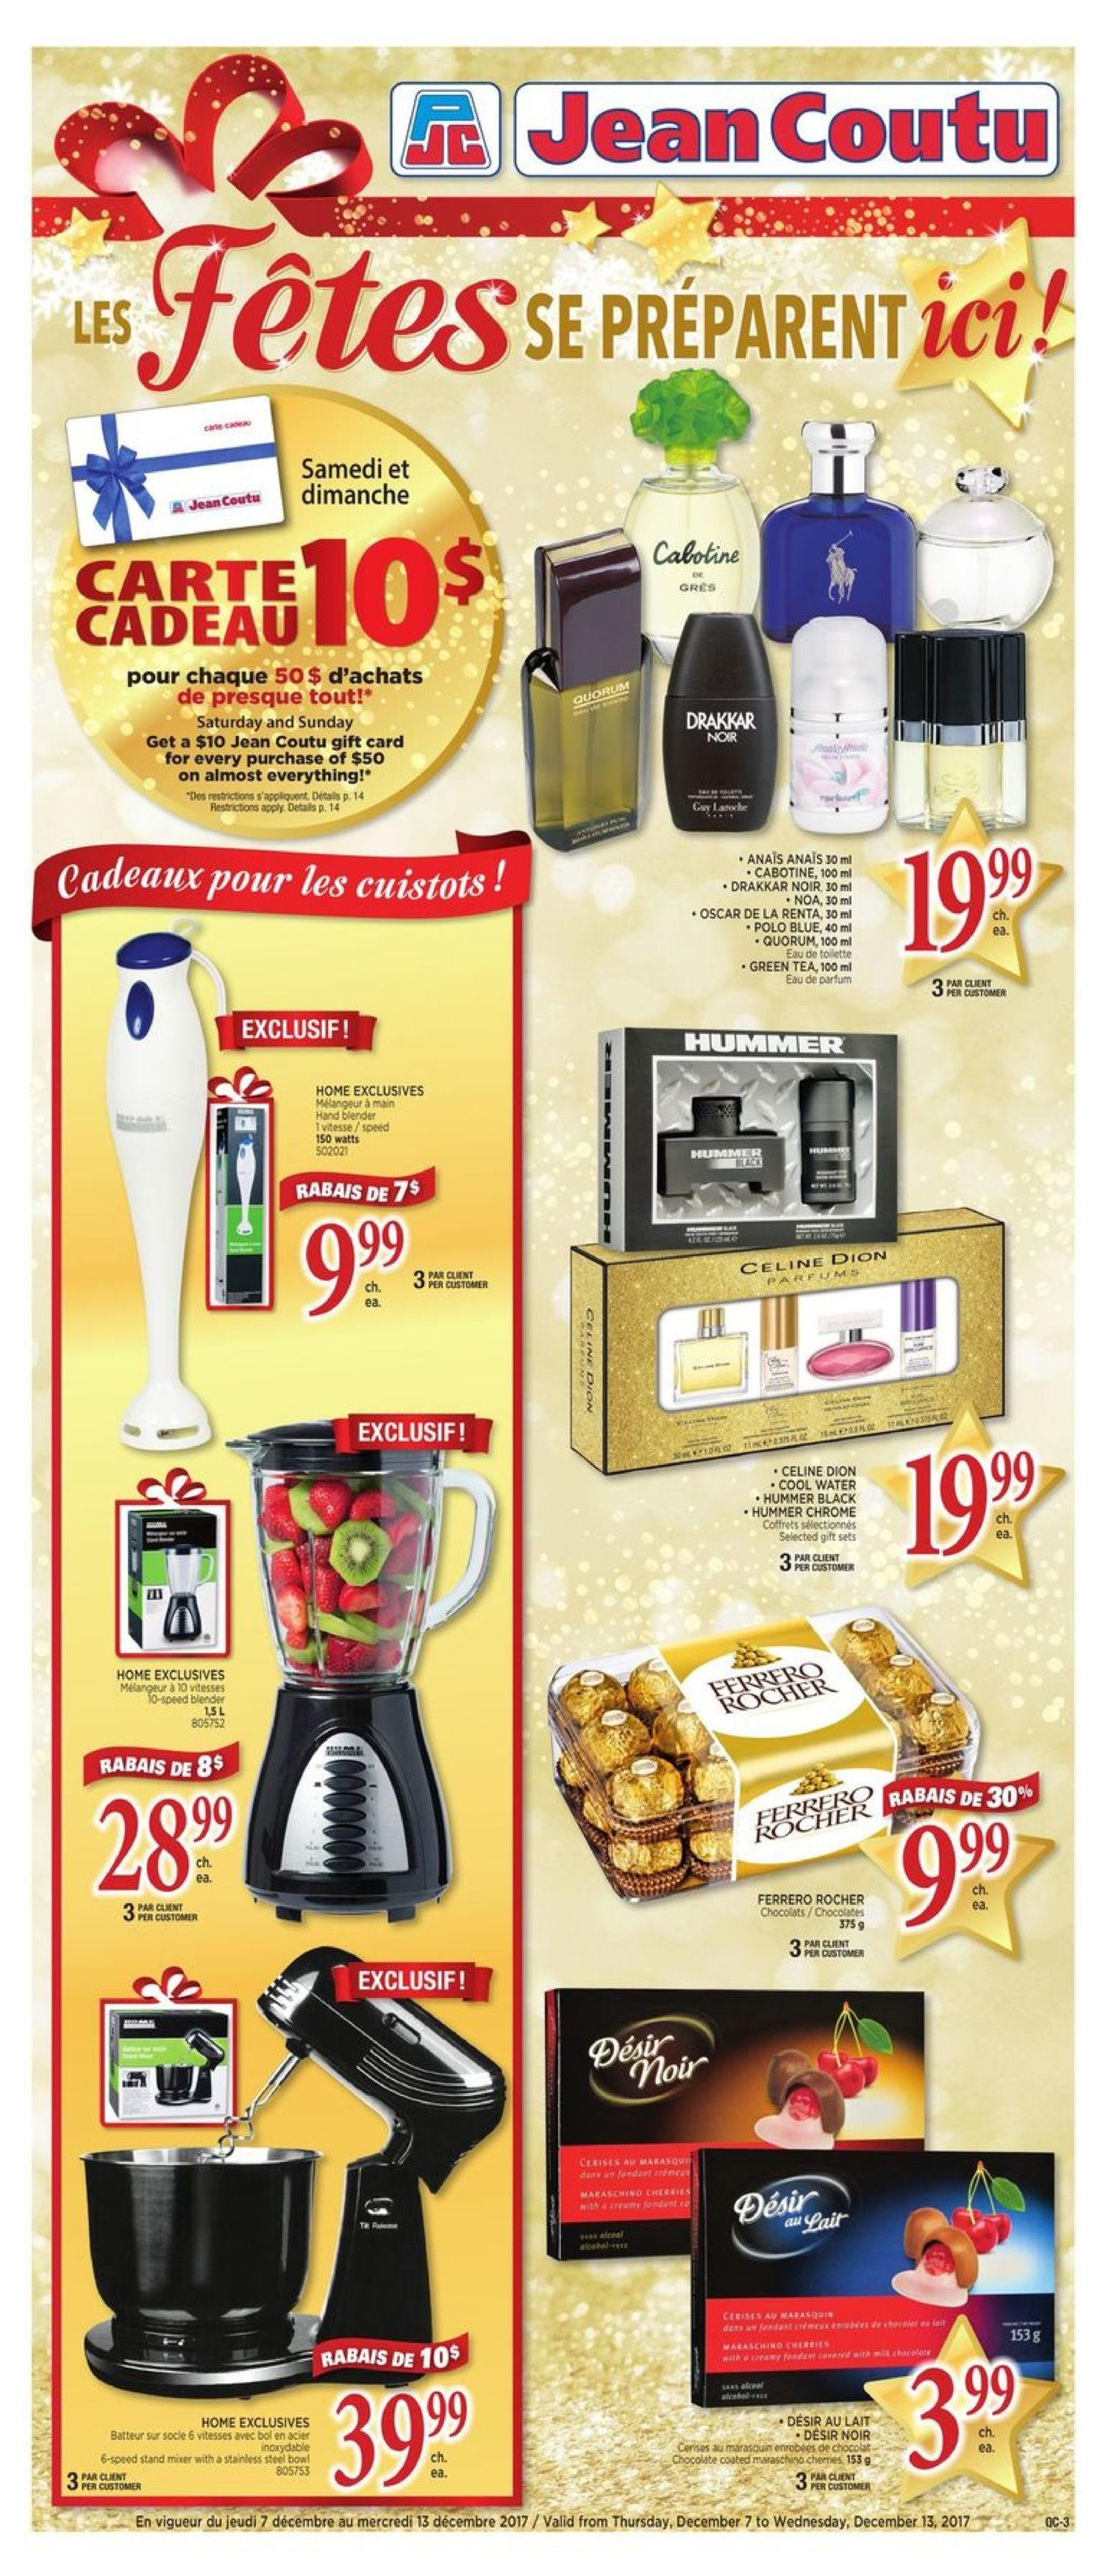 Jean Coutu Weekly Flyer Wrap Up The Holidays Dec 7 13